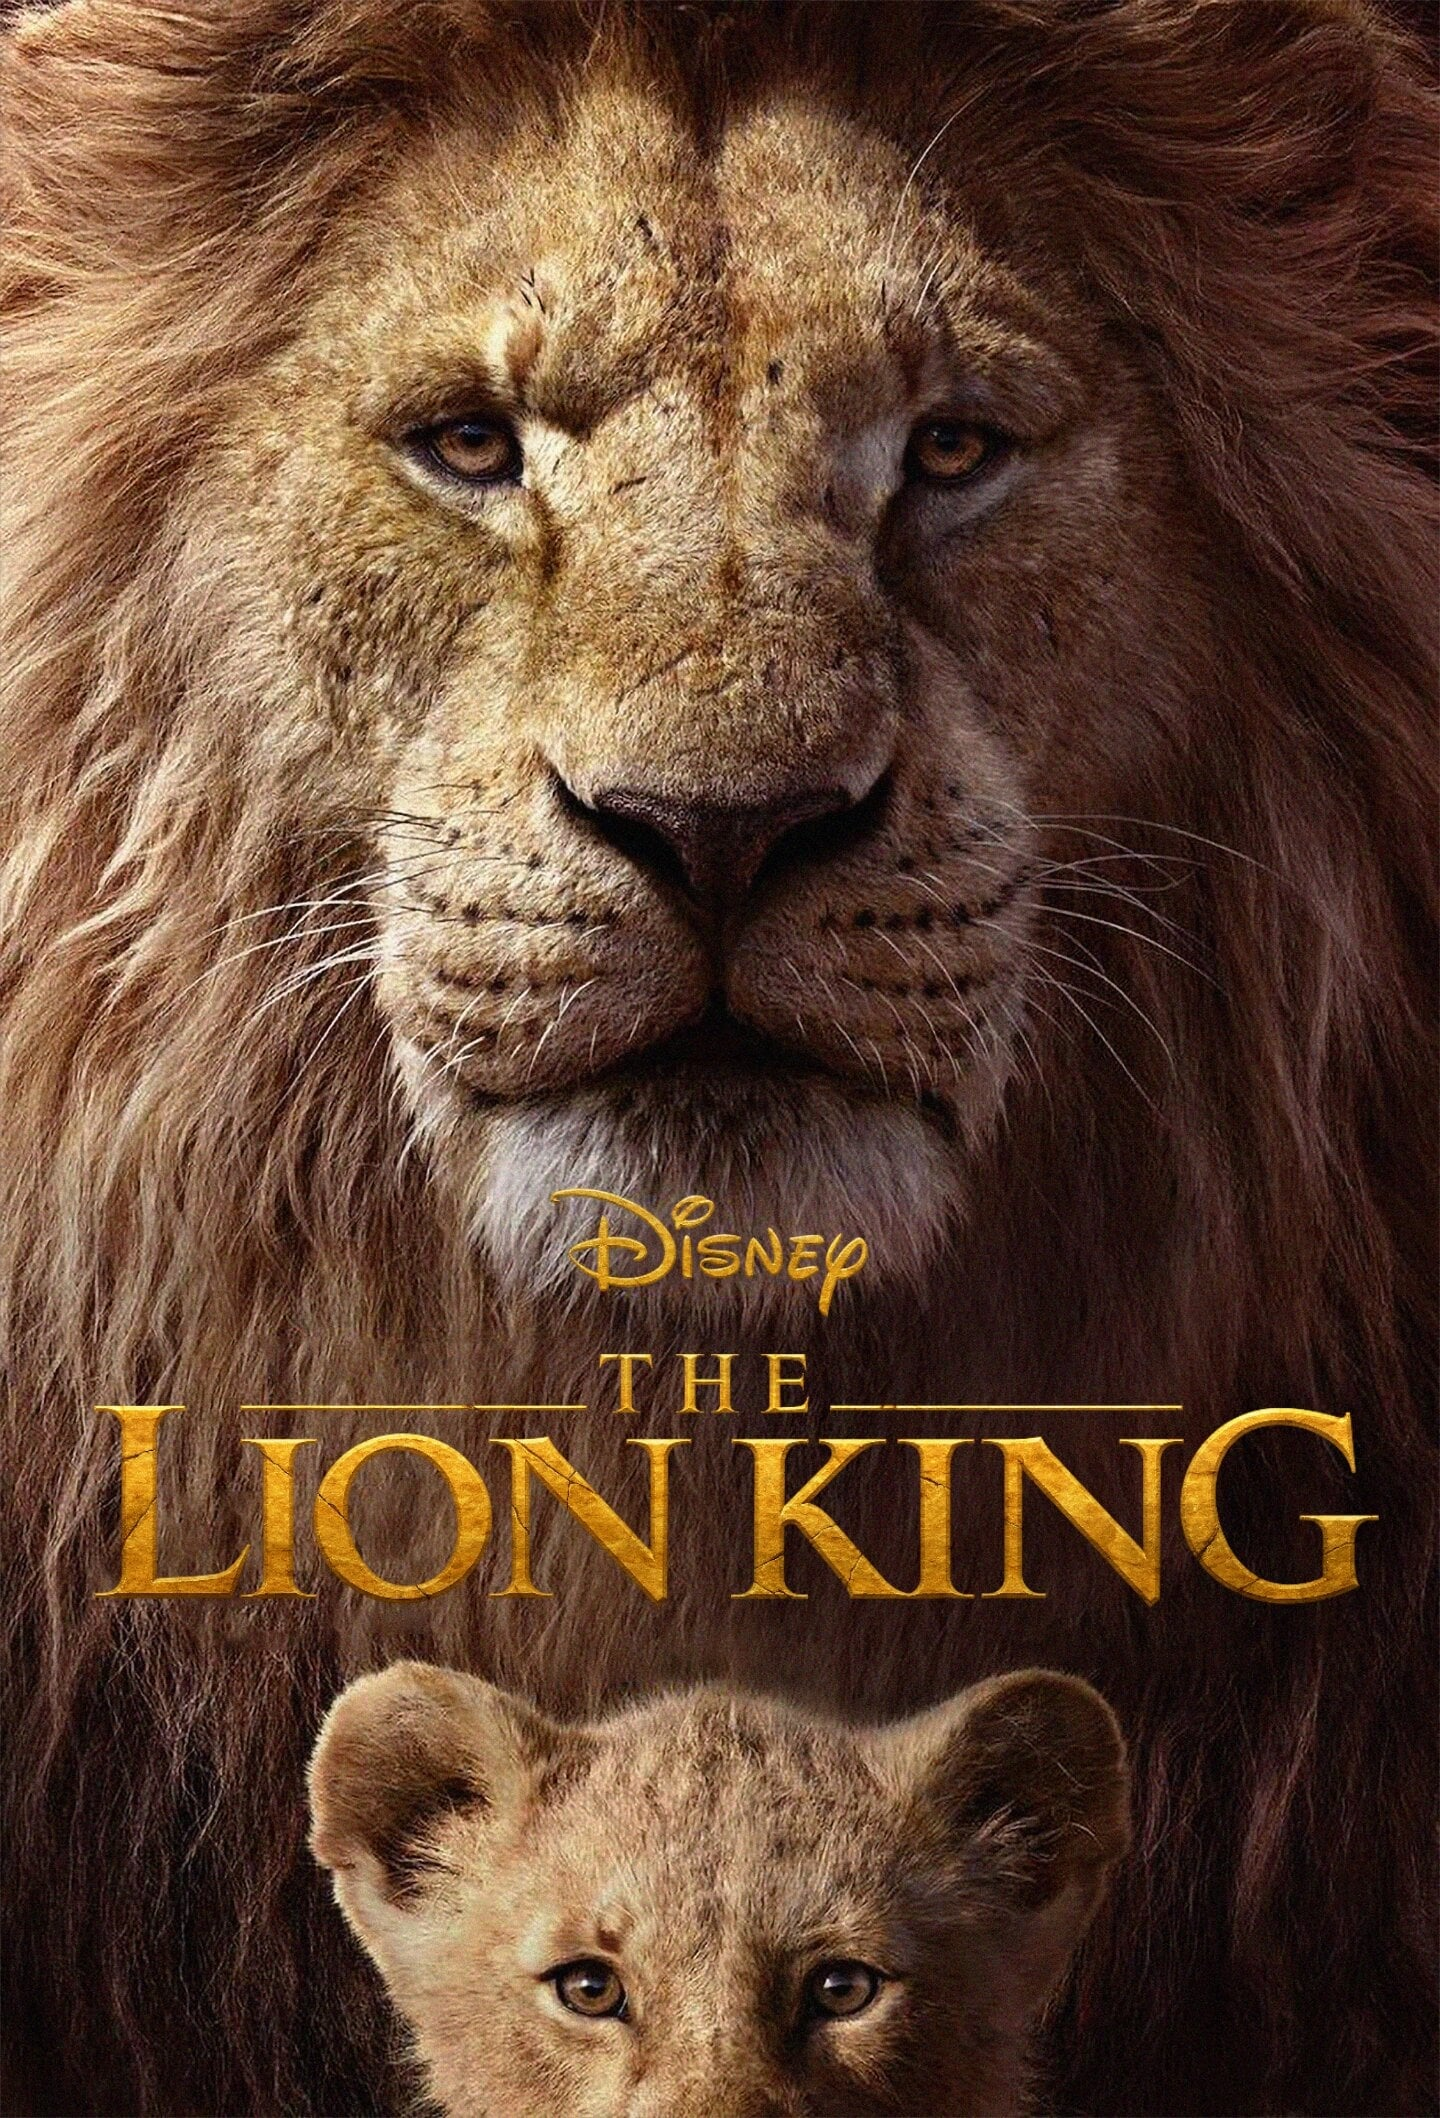 Watch The Lion King (2019) Full Movie Online Free - Watch Movies Online HD Quality